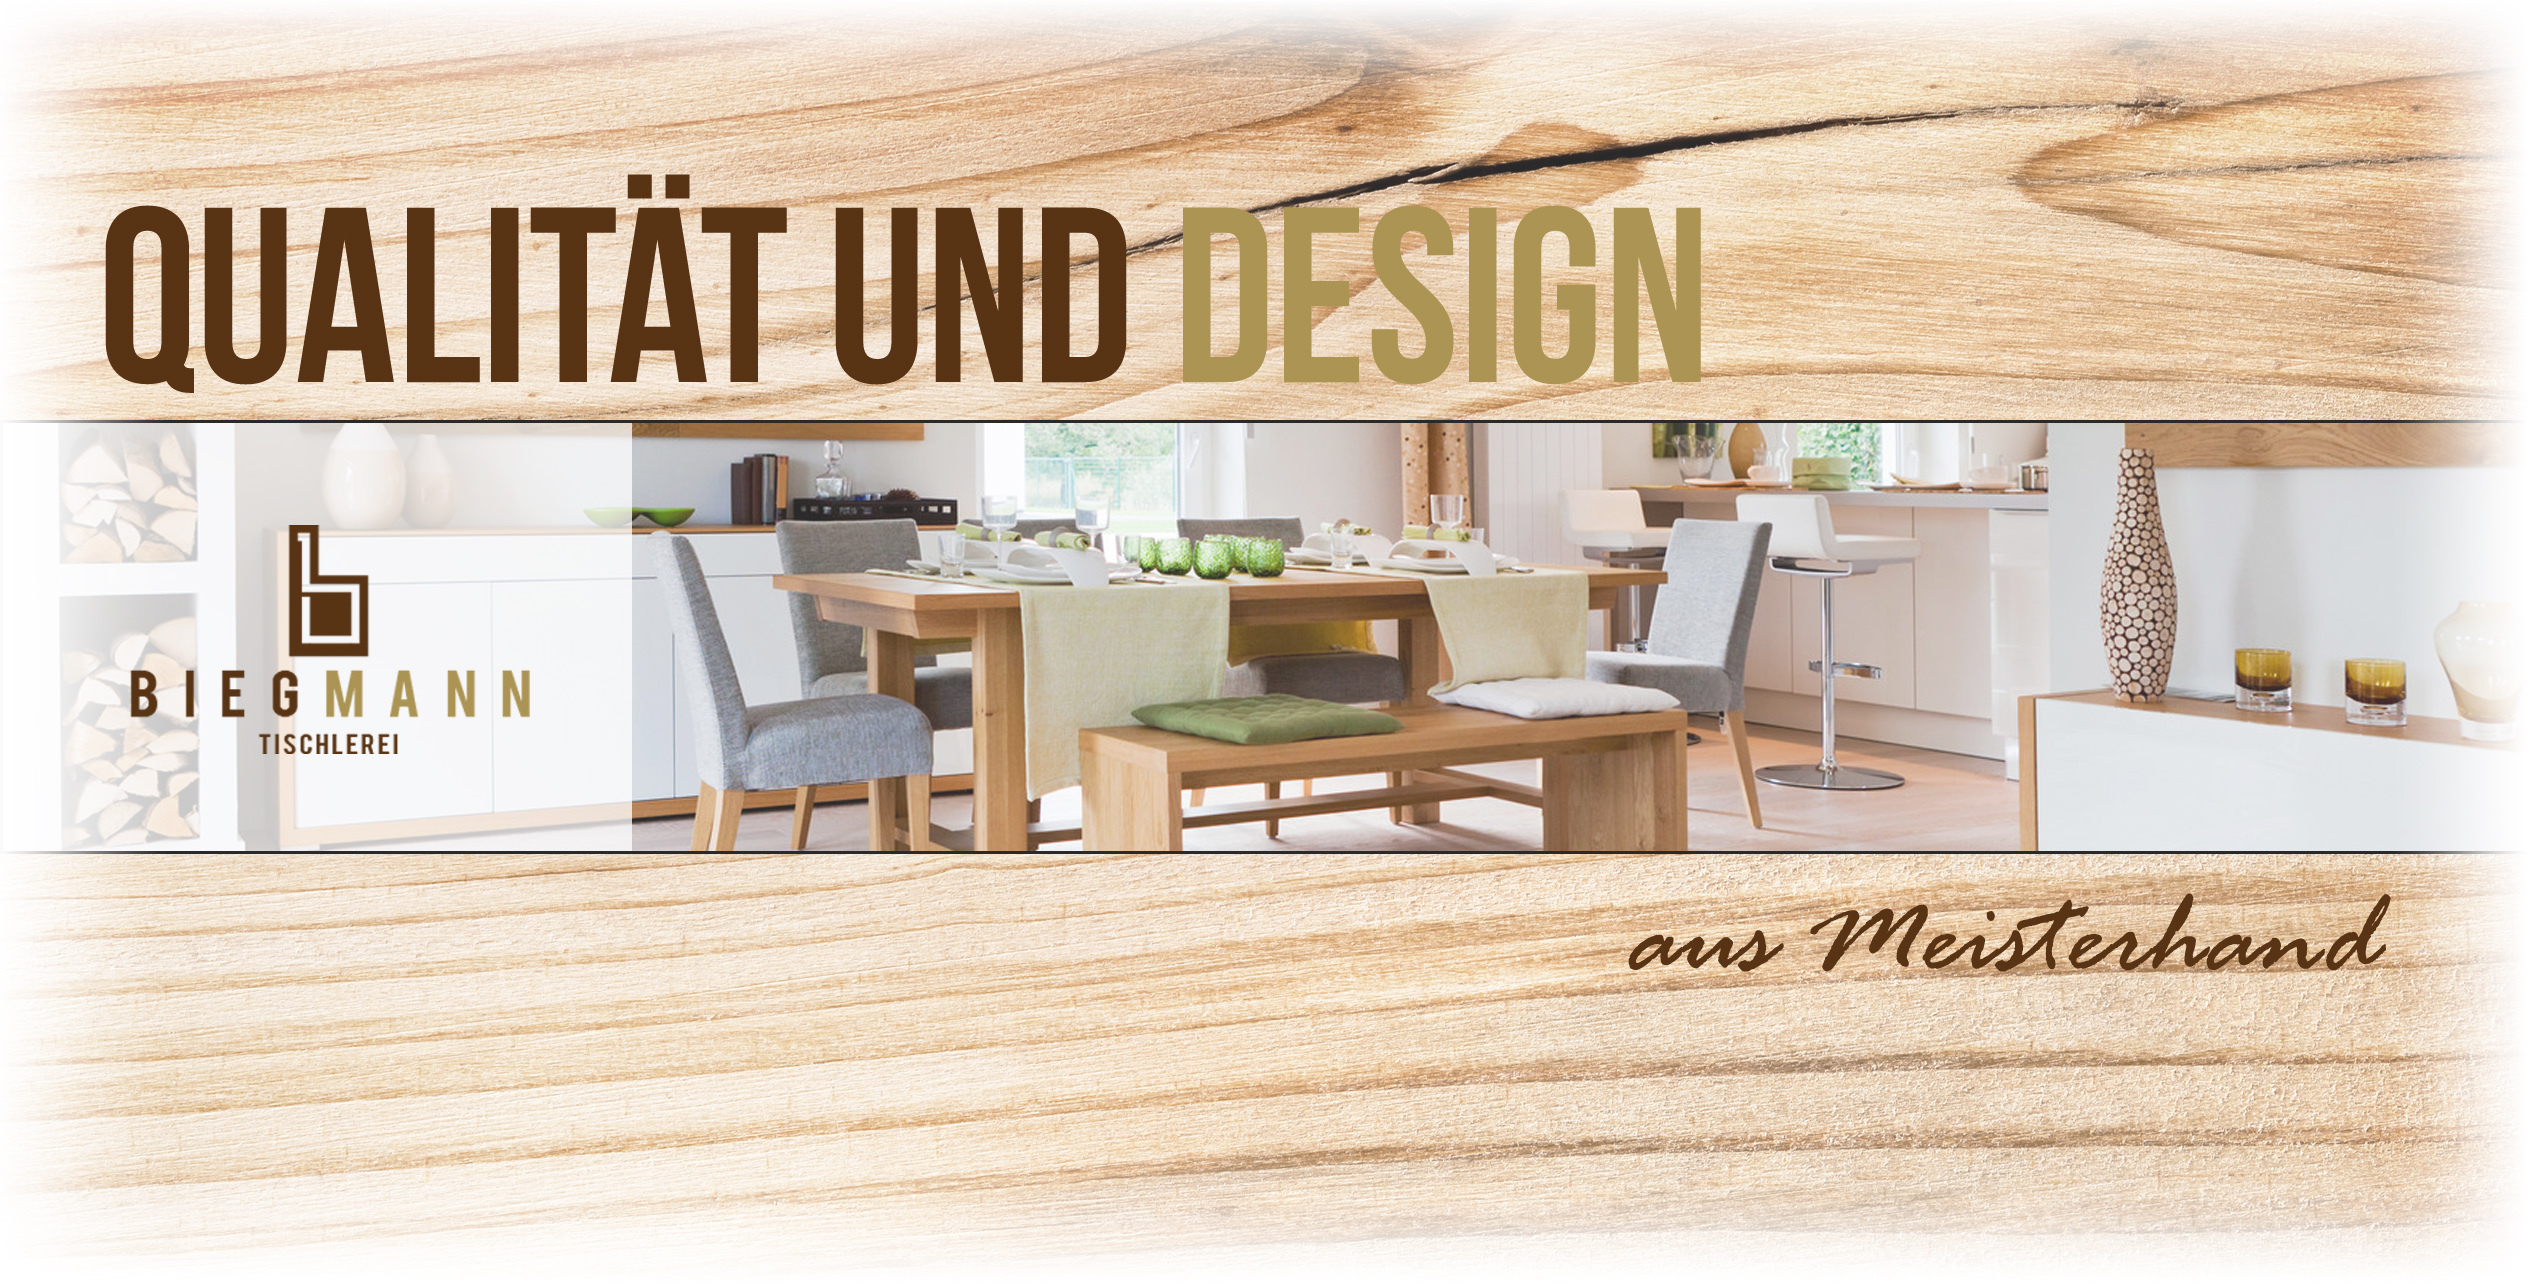 Mbel Martin Kchen Erfahrungen Affordable Kuchen Mobel Martin Martin Best Of Martin High